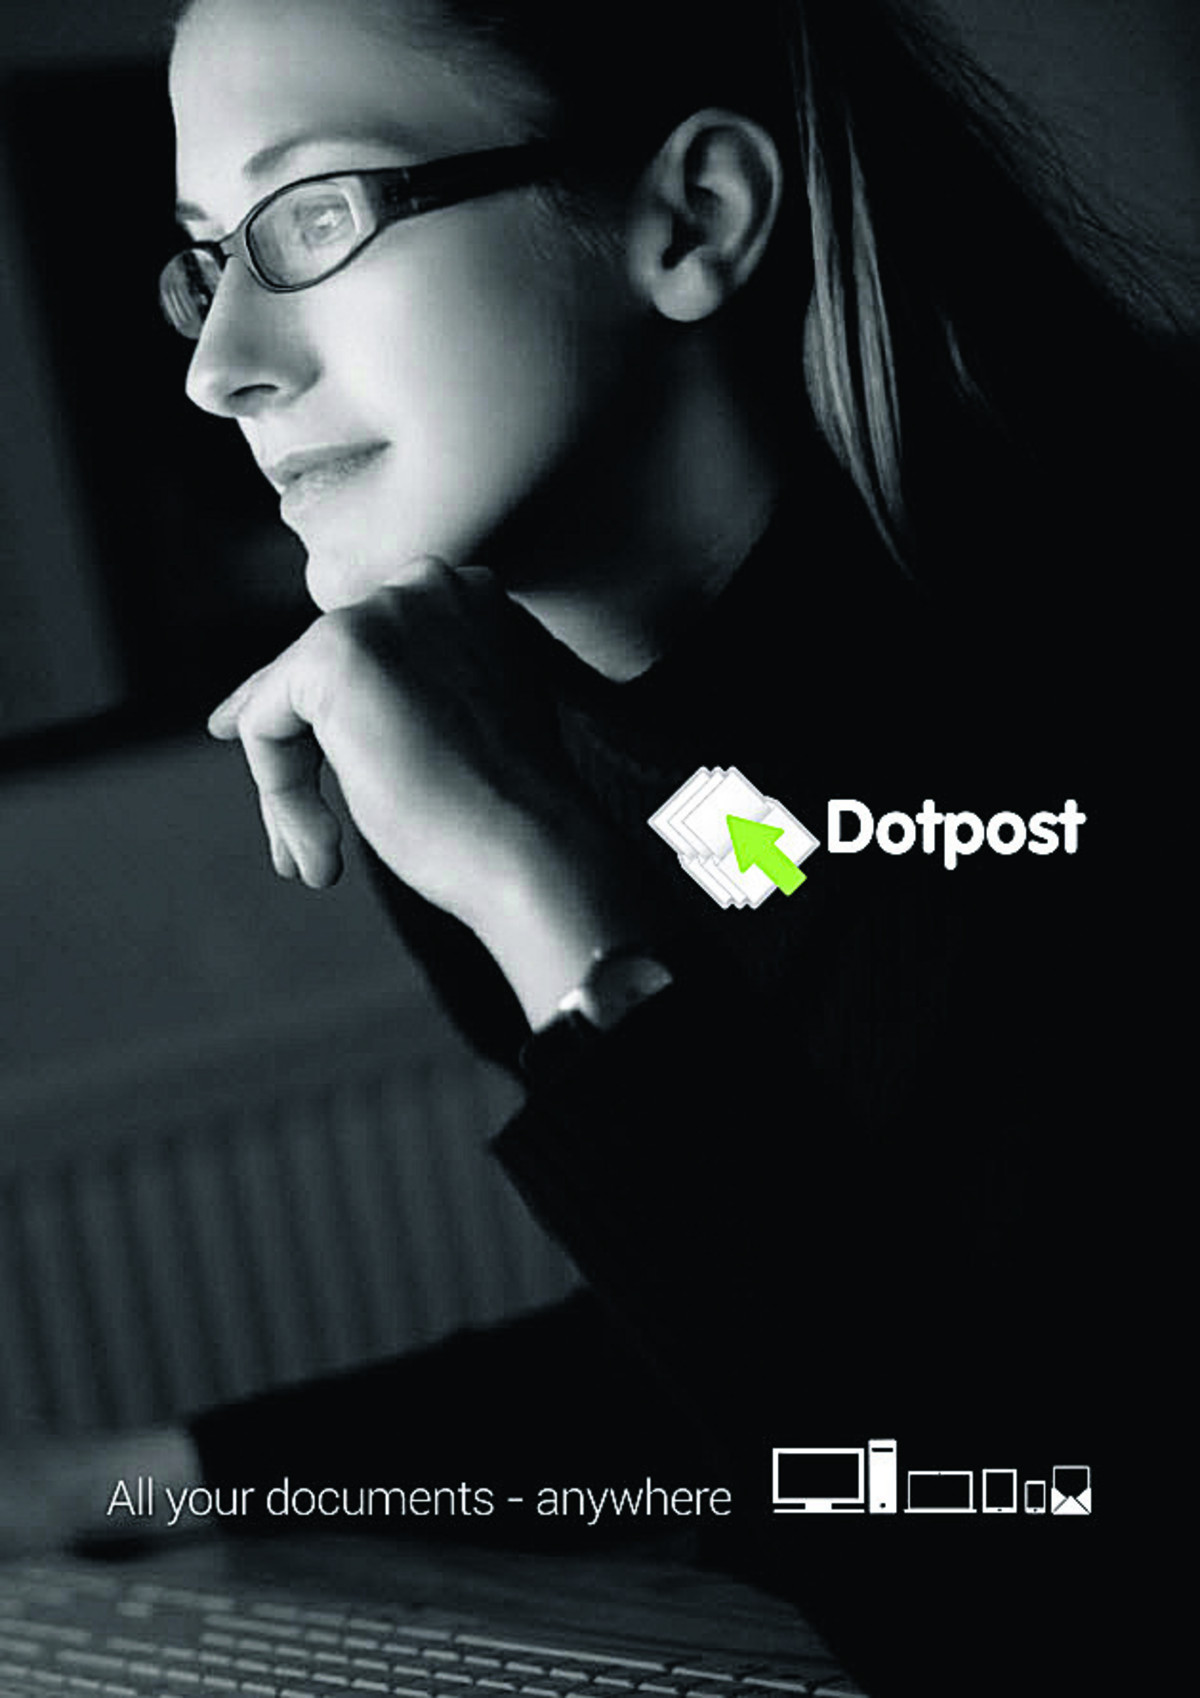 Wiltshire Council is the first local authority to send its council tax bills via Dotpost, an innovative online system